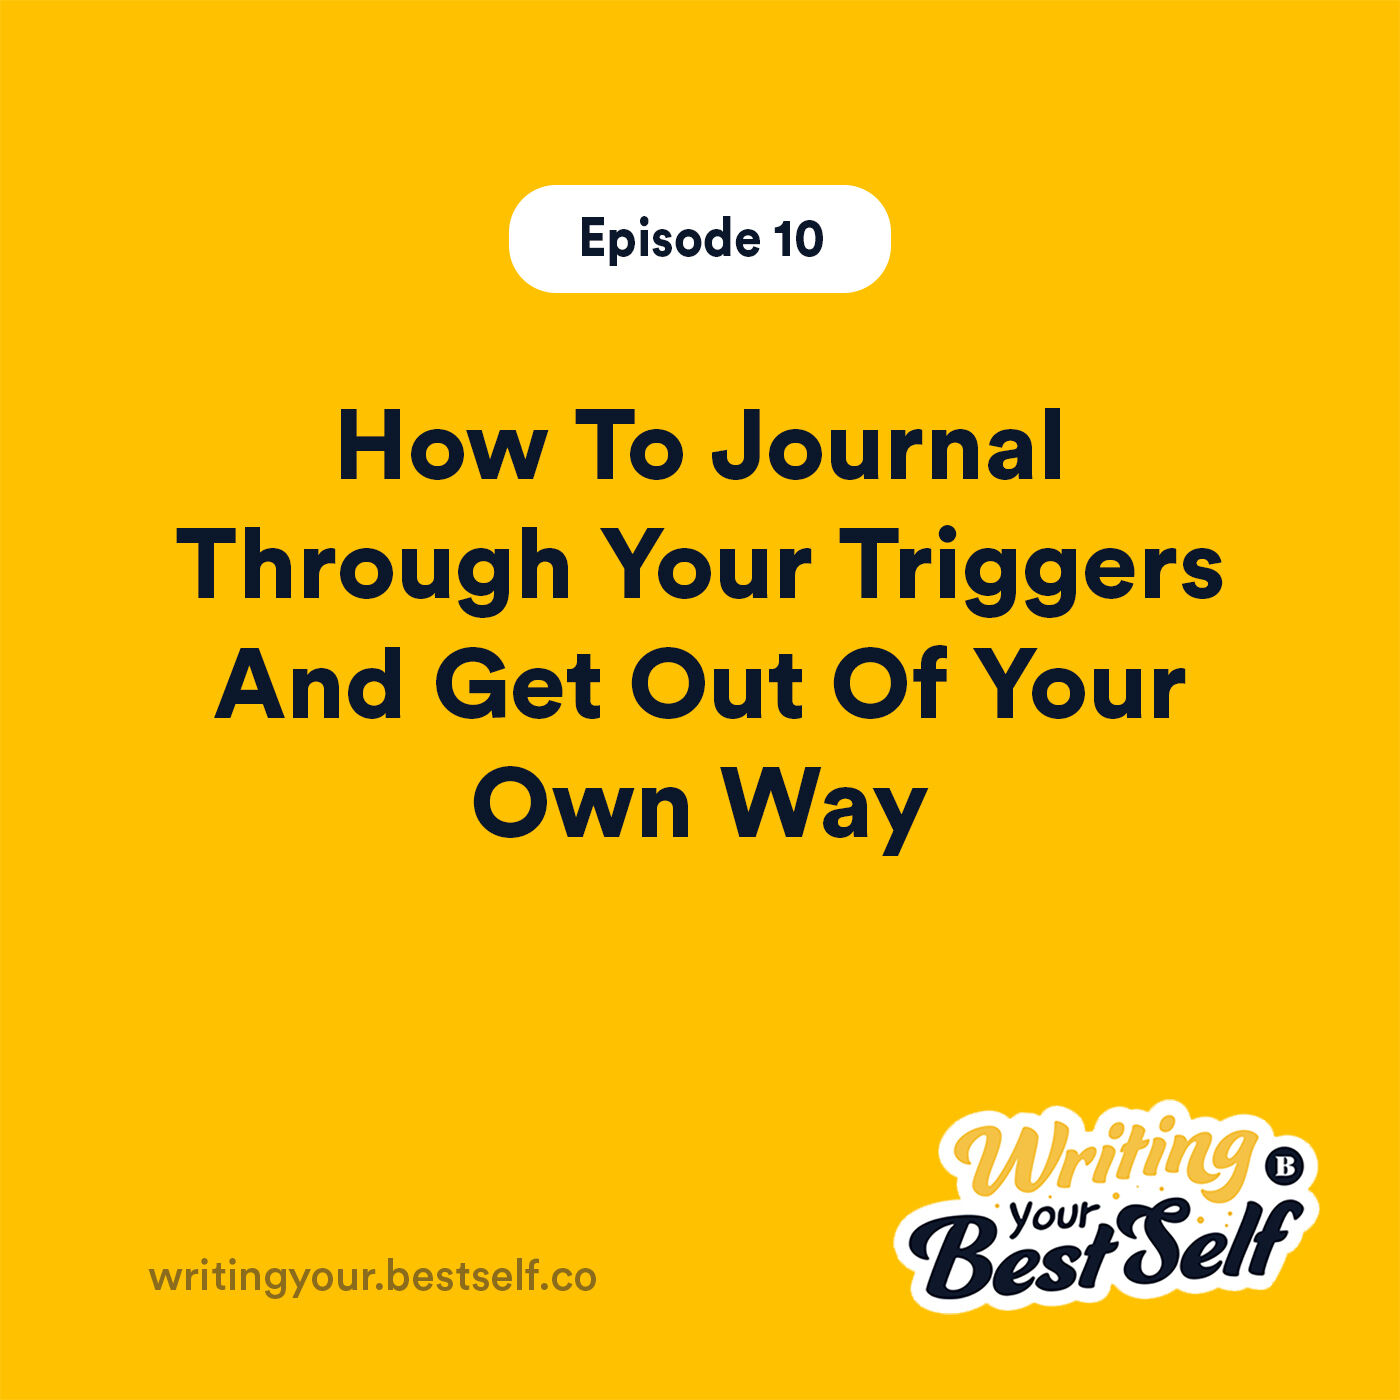 How To Journal Through Your Triggers And Get Out Of Your Own Way